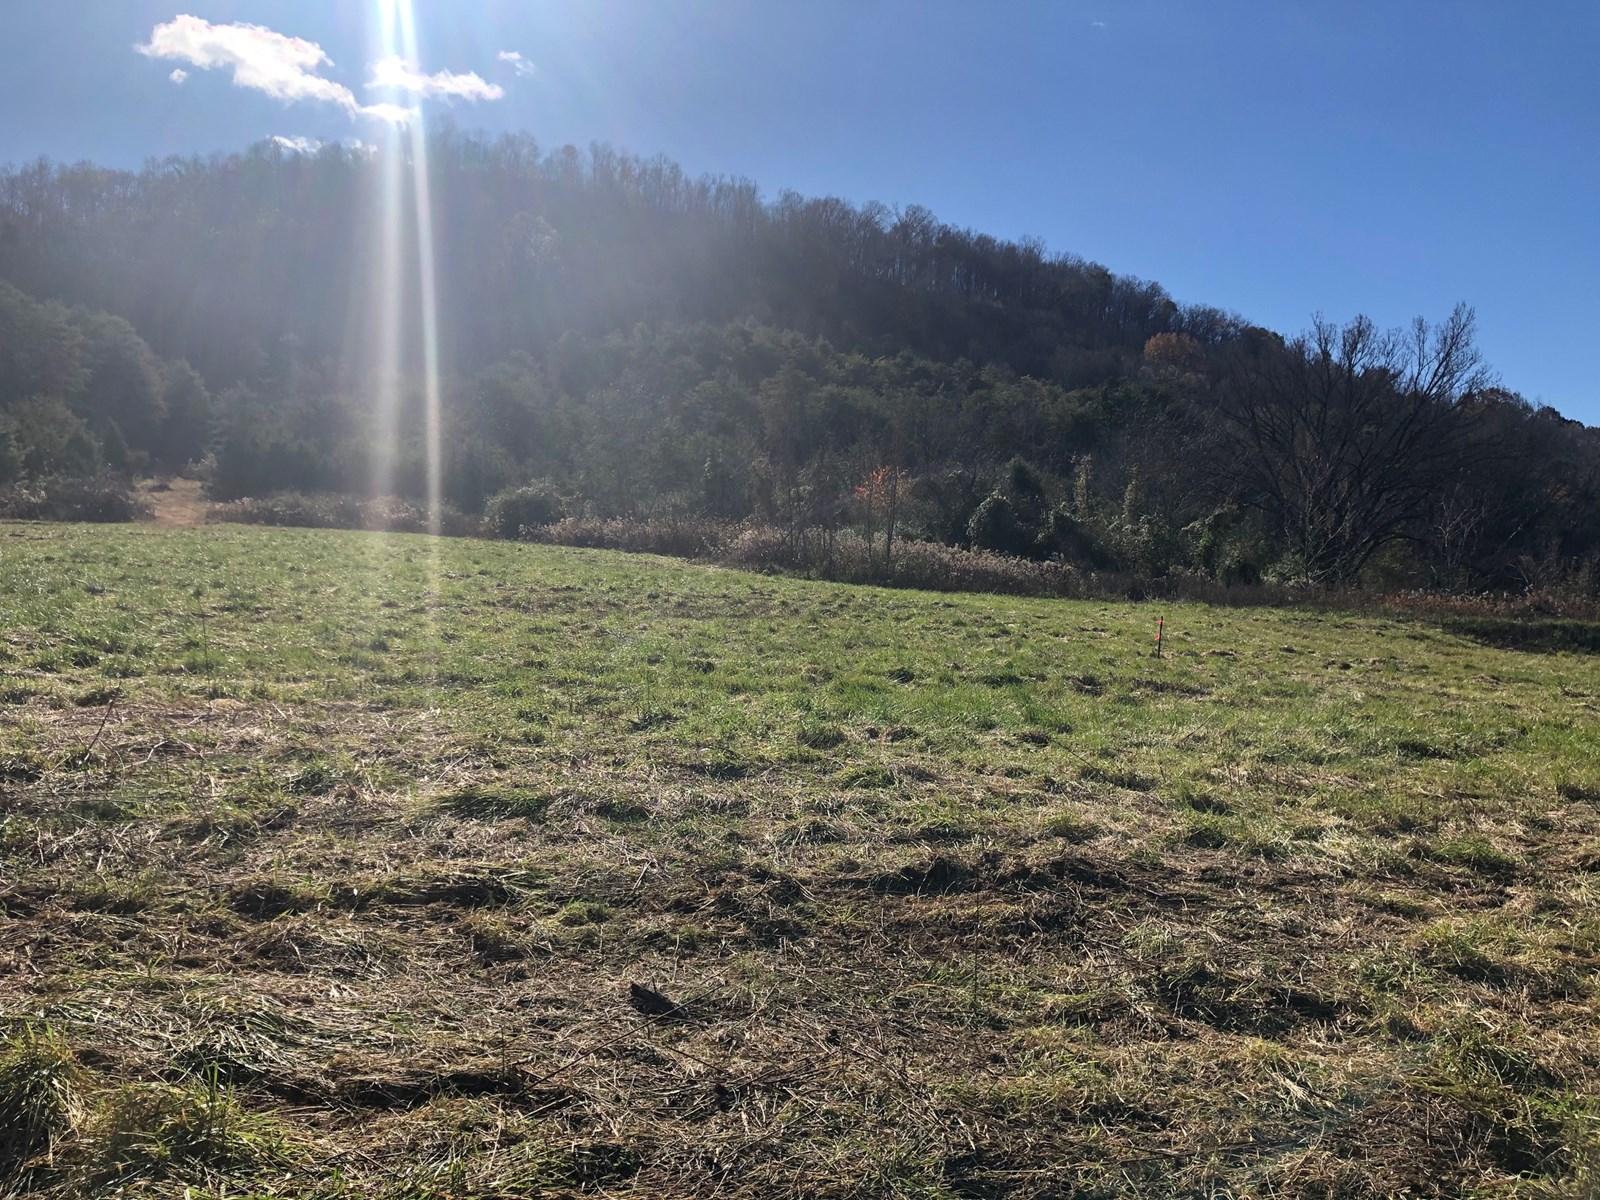 5 Acres Unrestricted Land For Sale in East TN